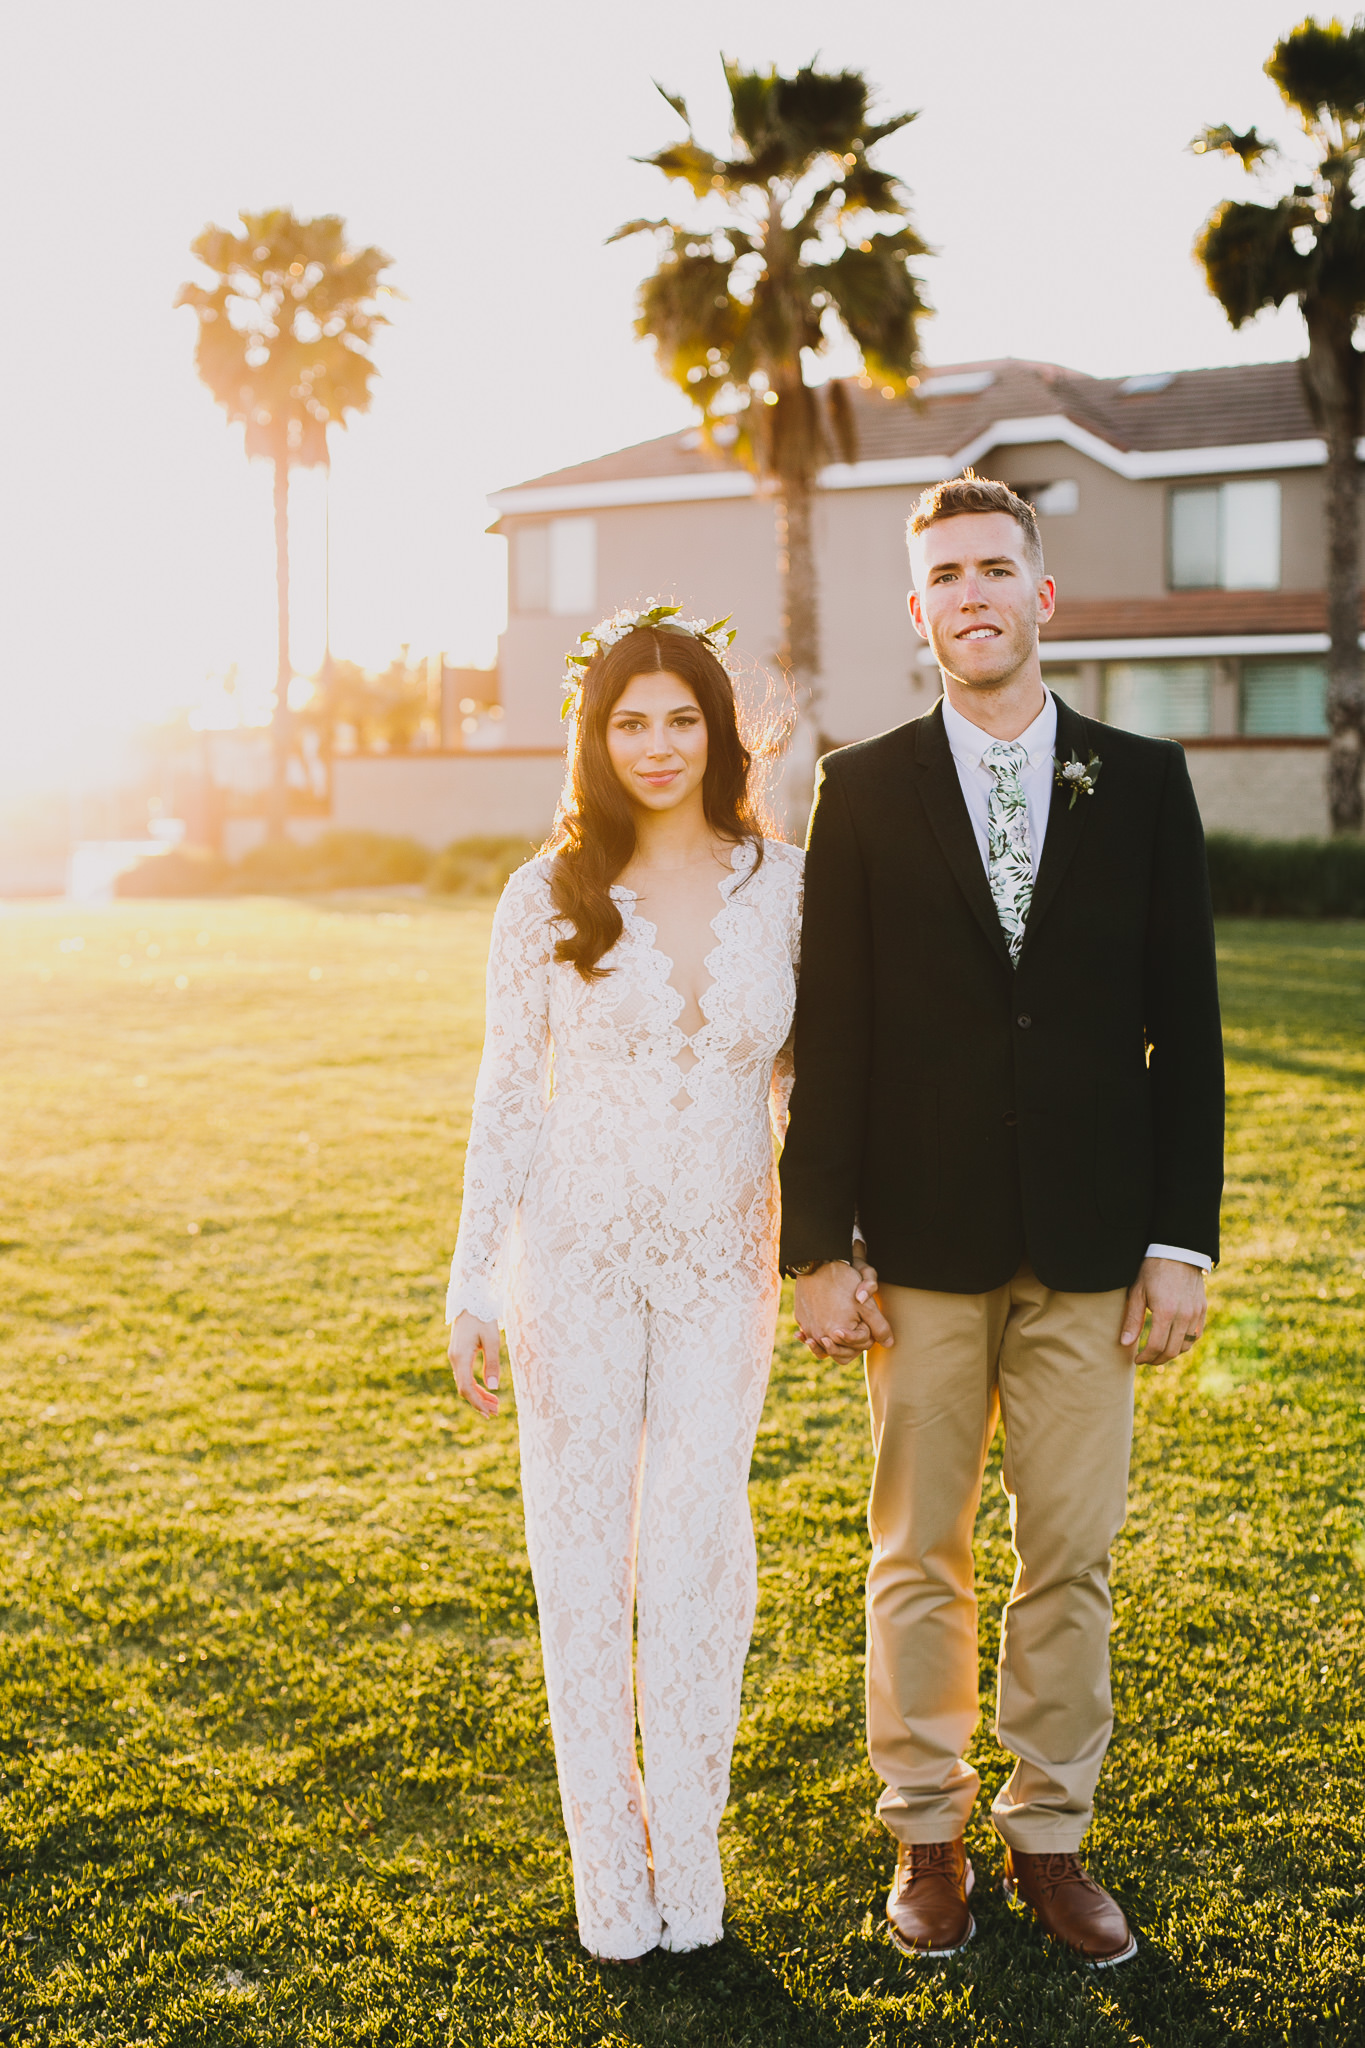 Archer Inspired Photography Lauren and Derek Long Beach Orange County Wedding Elopement-300.jpg